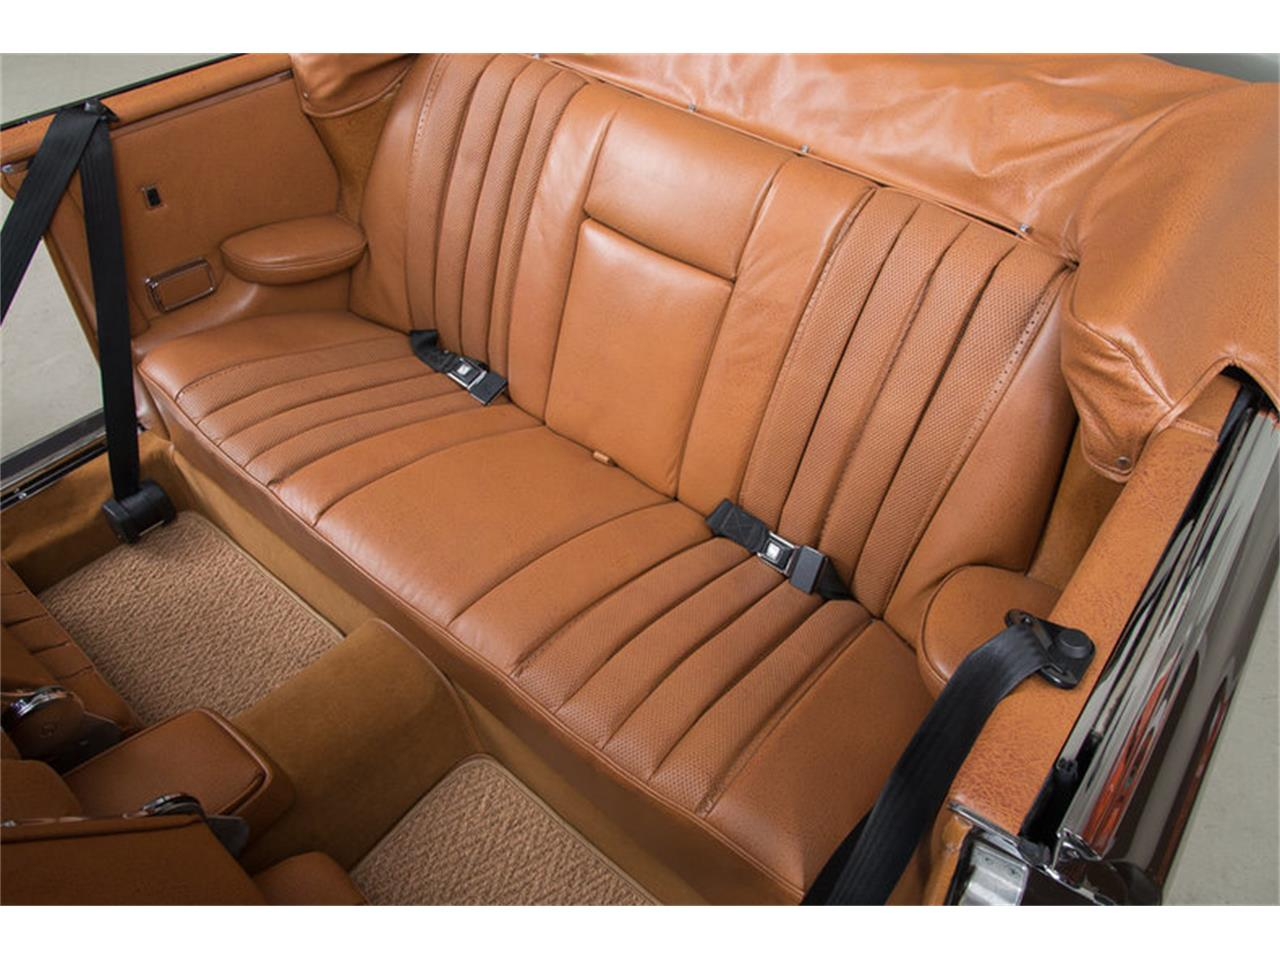 Large Picture of '71 Mercedes-Benz 280 SE 3.5 Cabriolet located in California Auction Vehicle - G0JQ